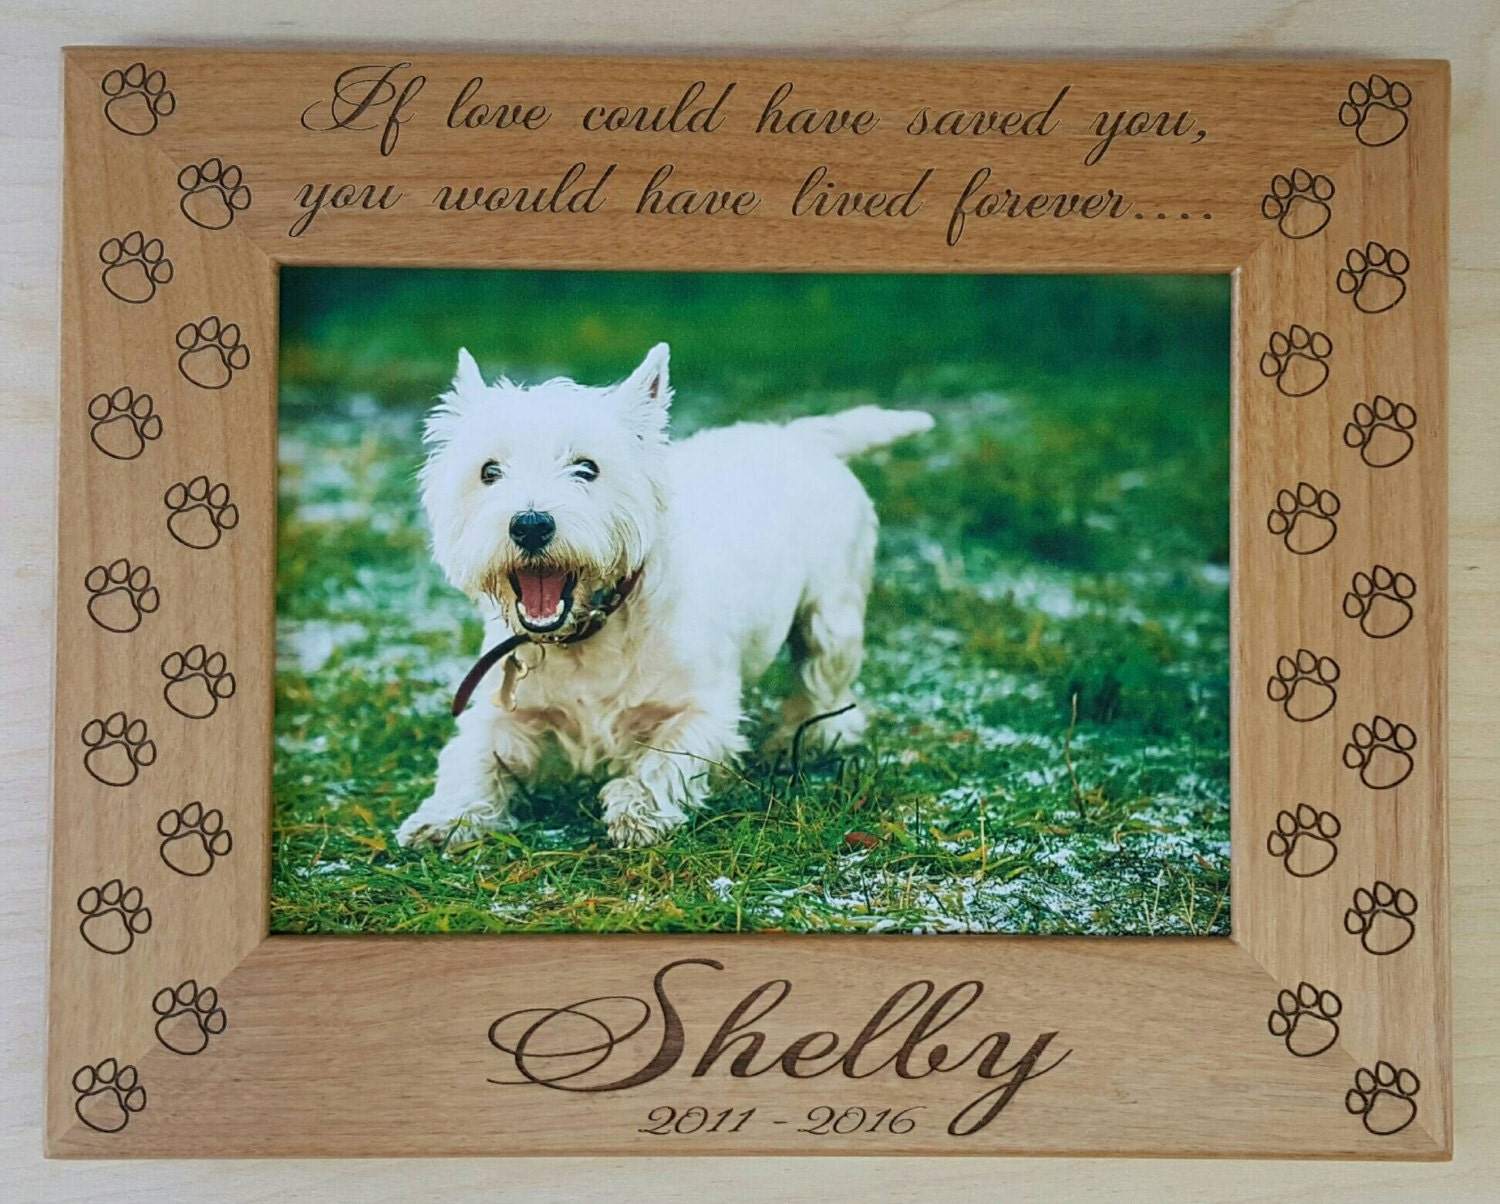 dog memorial picture frame 5x7 pet custom laser engraved frame if love could have saved you you would have lived forever cat memorial